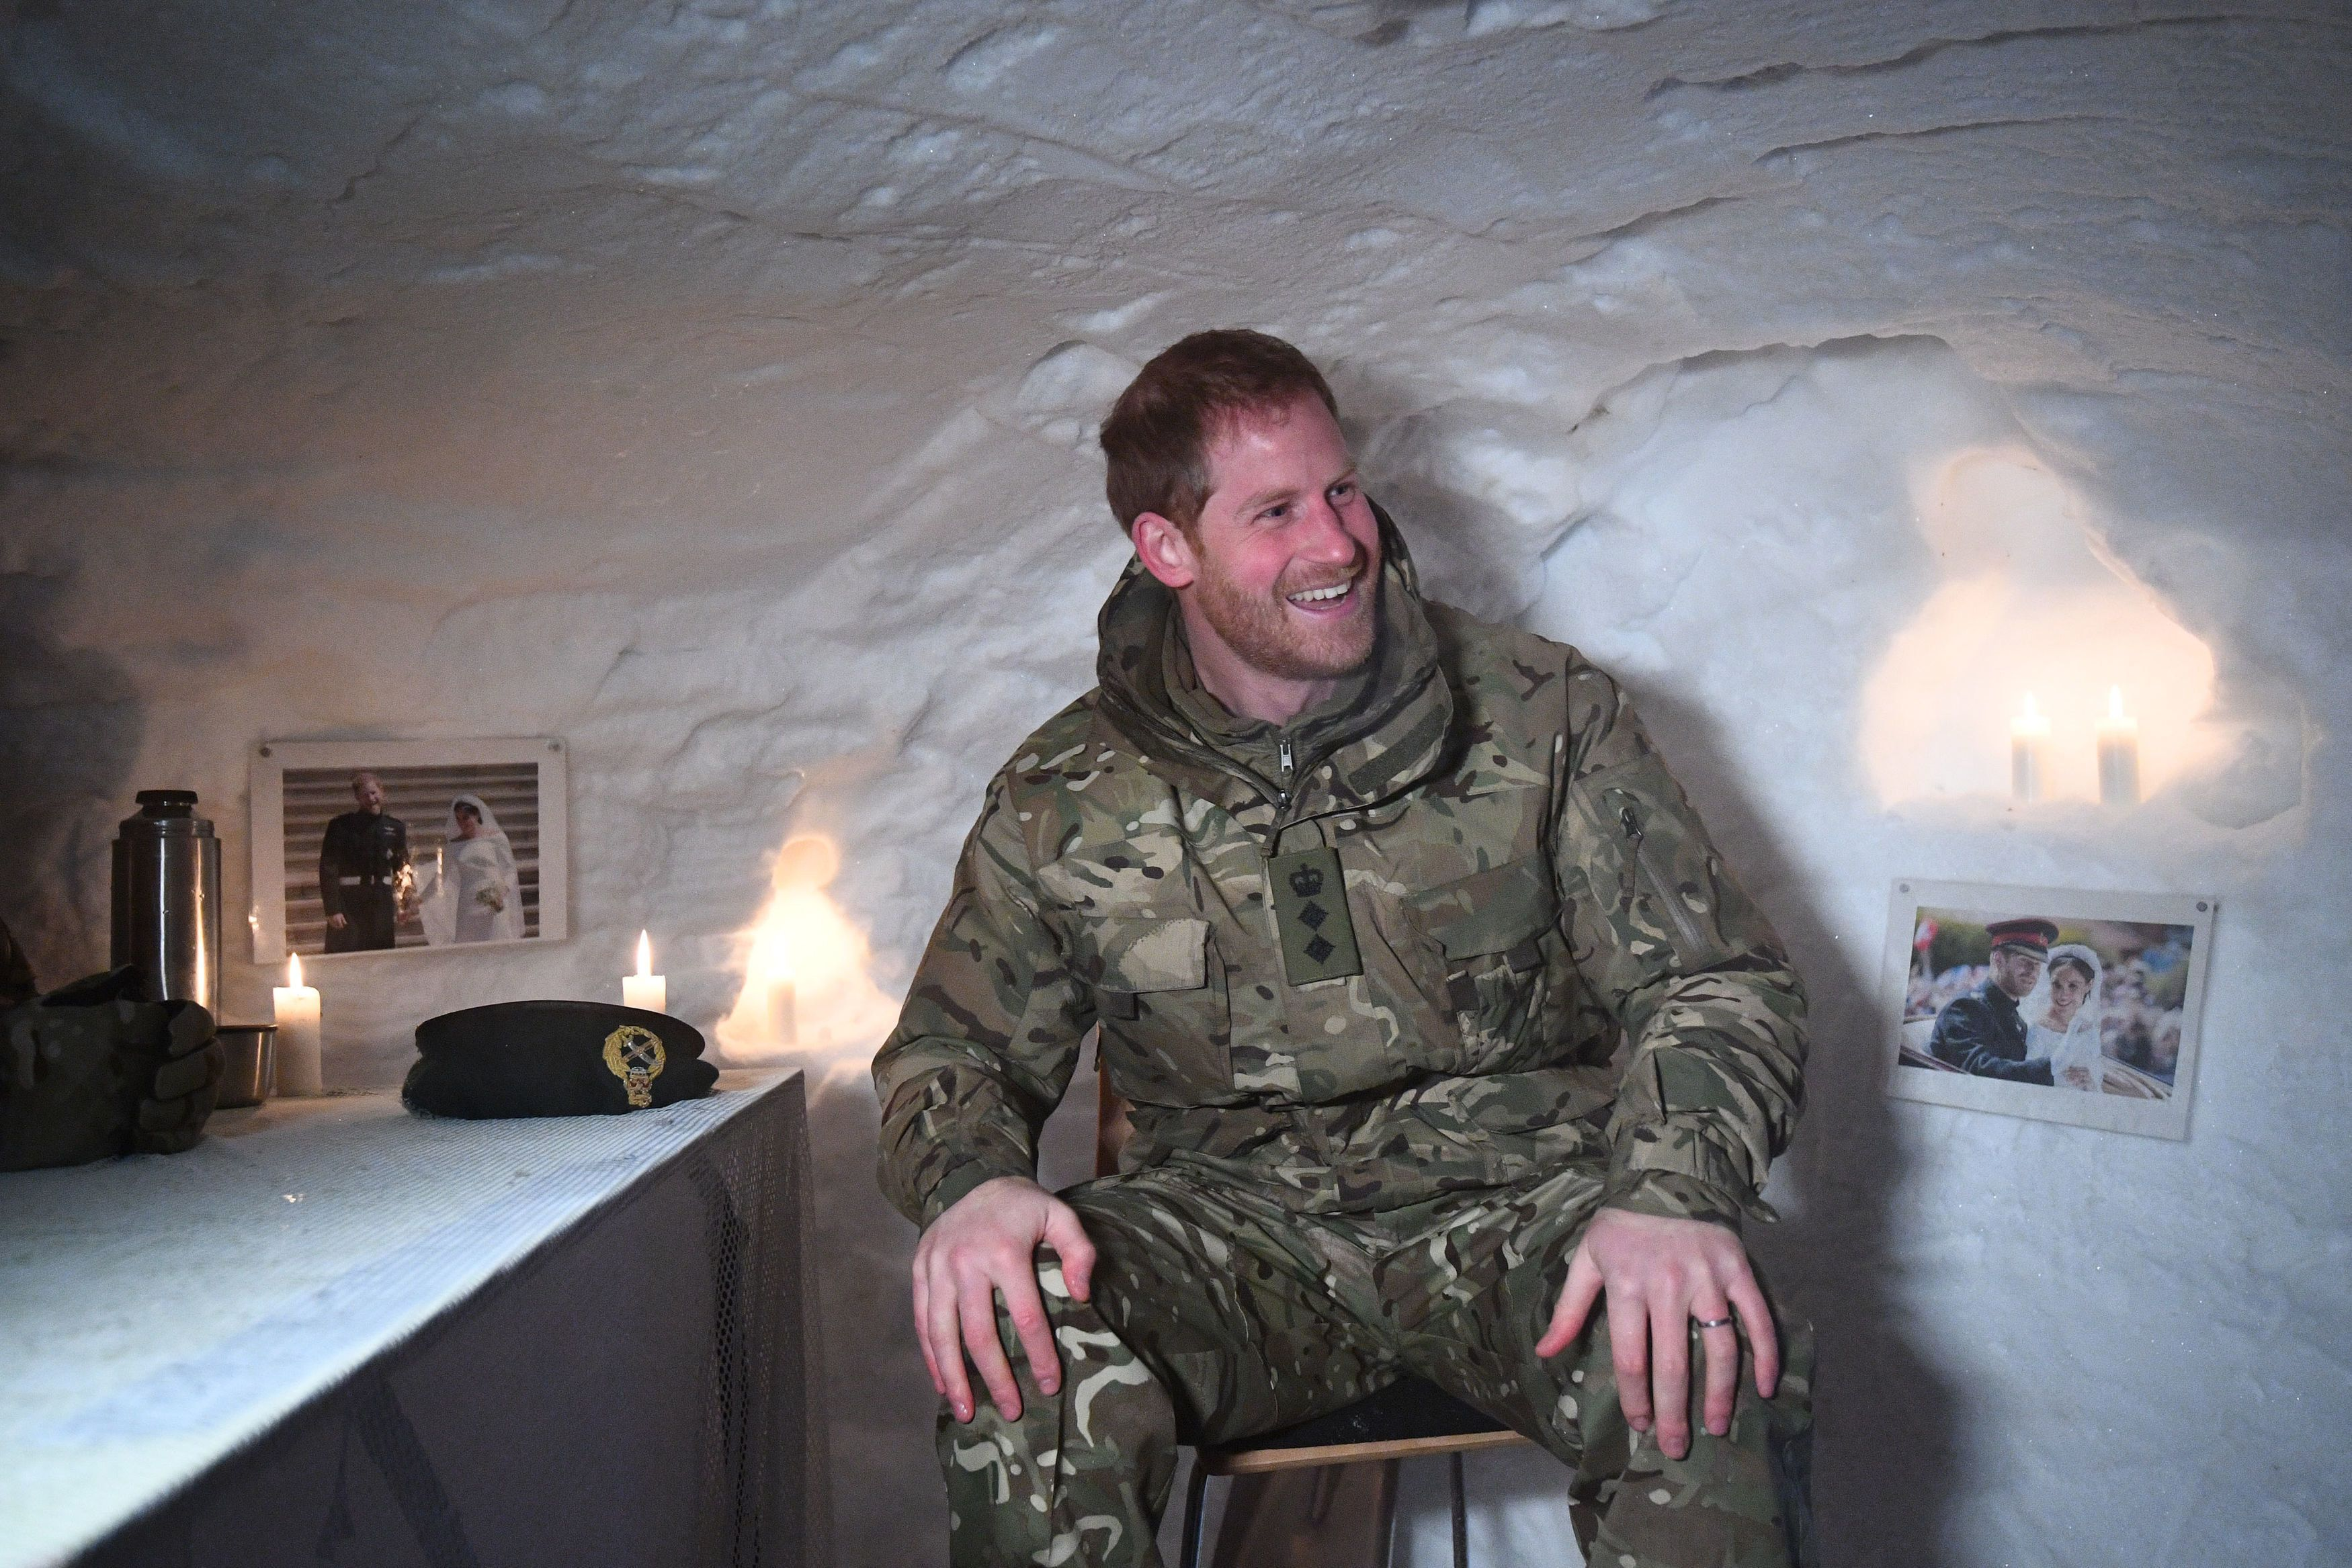 BARDUFOSS, NORWAY - FEBRUARY 14: Prince Harry, Duke of Sussex in a Quincey Shelter, a makeshift shelter built of snow, during a visit to Exercise Clockwork in Bardufoss, Norway, for a celebration of the 50th anniversary of the Commando Helicopter Force and Joint Helicopter Command deploying for extreme cold weather training, on February 14, 2019 in Bardufoss, Norway. Exercise Clockwork is the traditional name for the annual winter exercise, based in one of the world's most demanding environments, 200 miles inside the Arctic Circle in north Norway. (Photo by Victoria Jones - Pool/Getty Images)